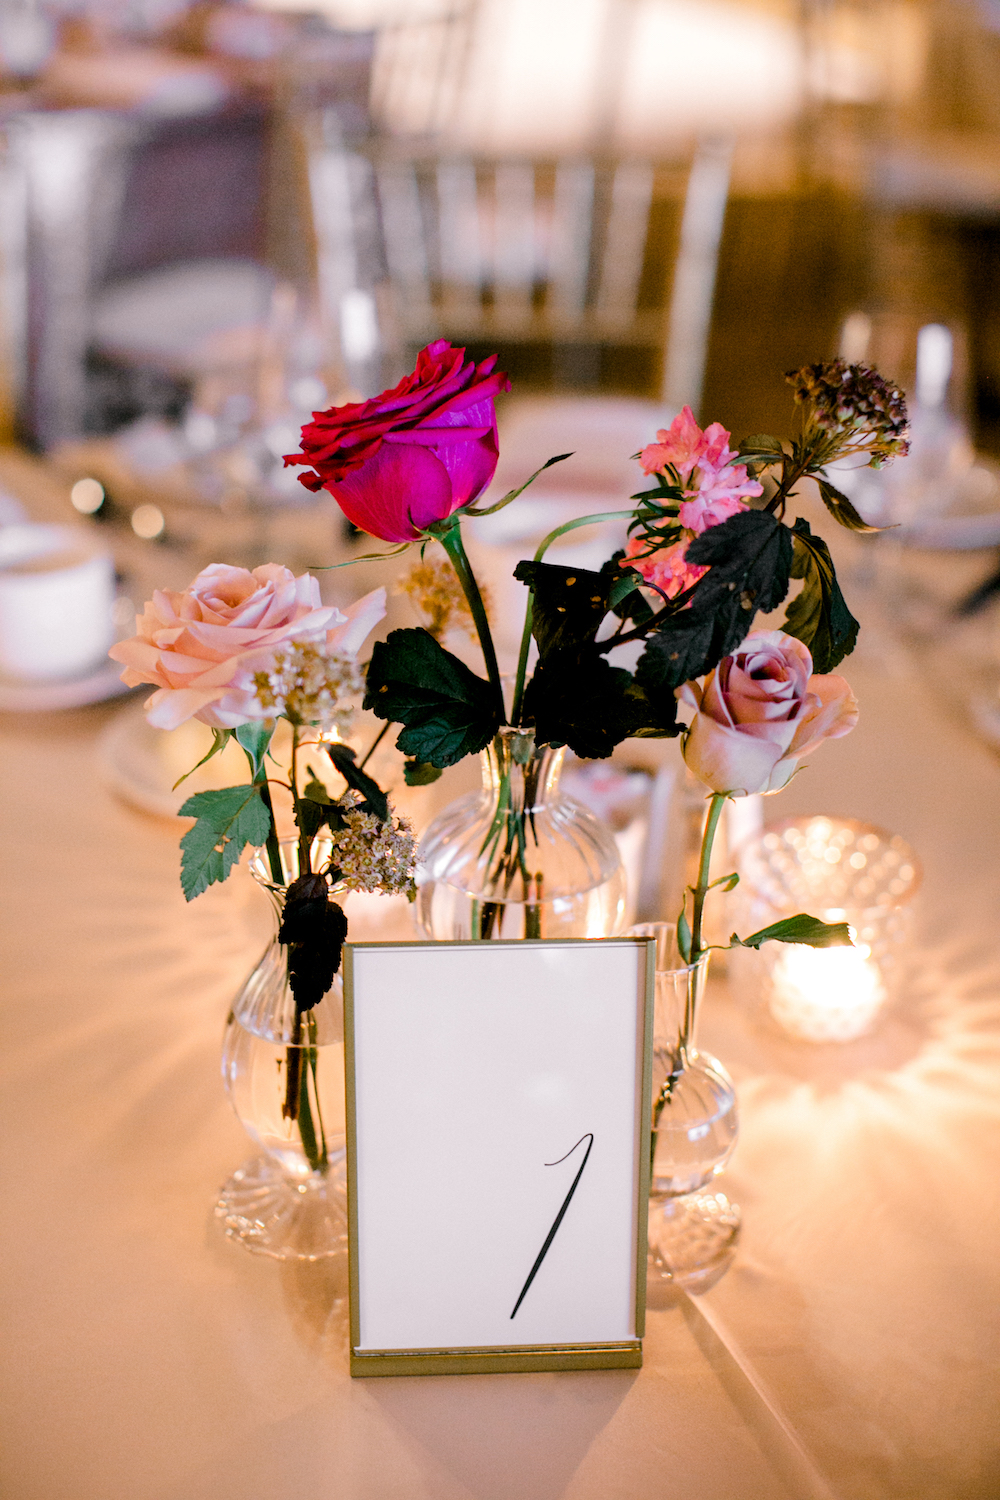 Stem Vase Wedding Centrepieces - Blush and Berry Wedding Flowers